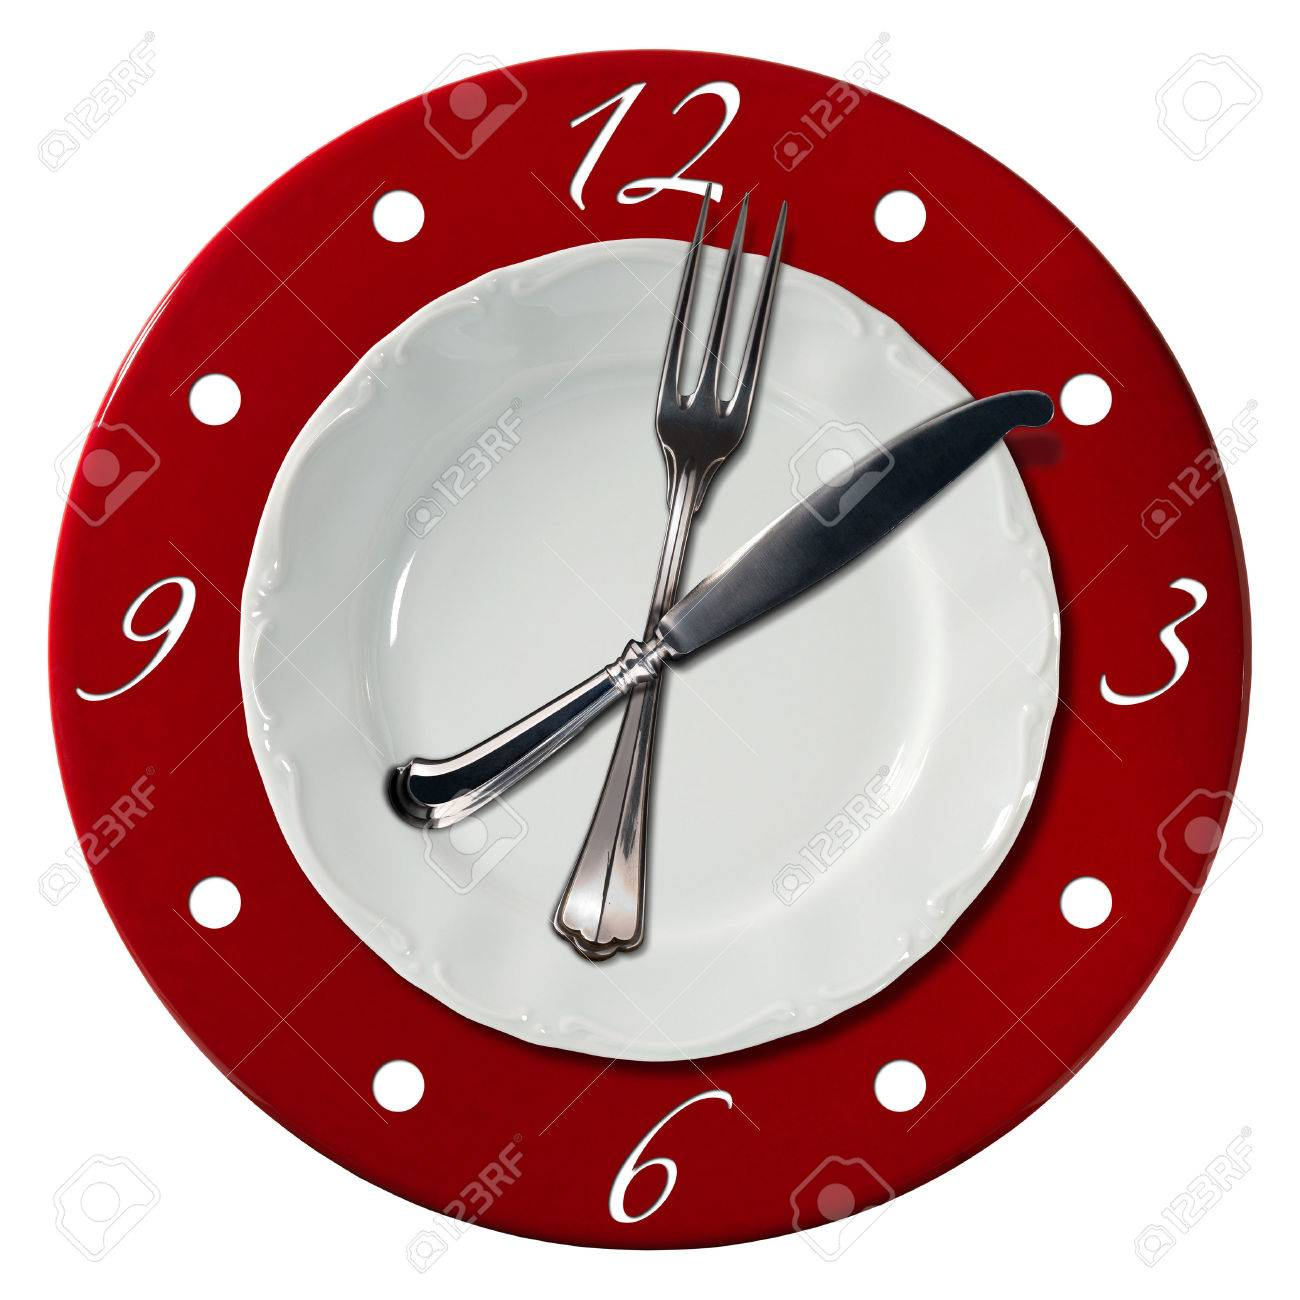 Clock Composed By A White Plate And A Red Underplate With Fork ...